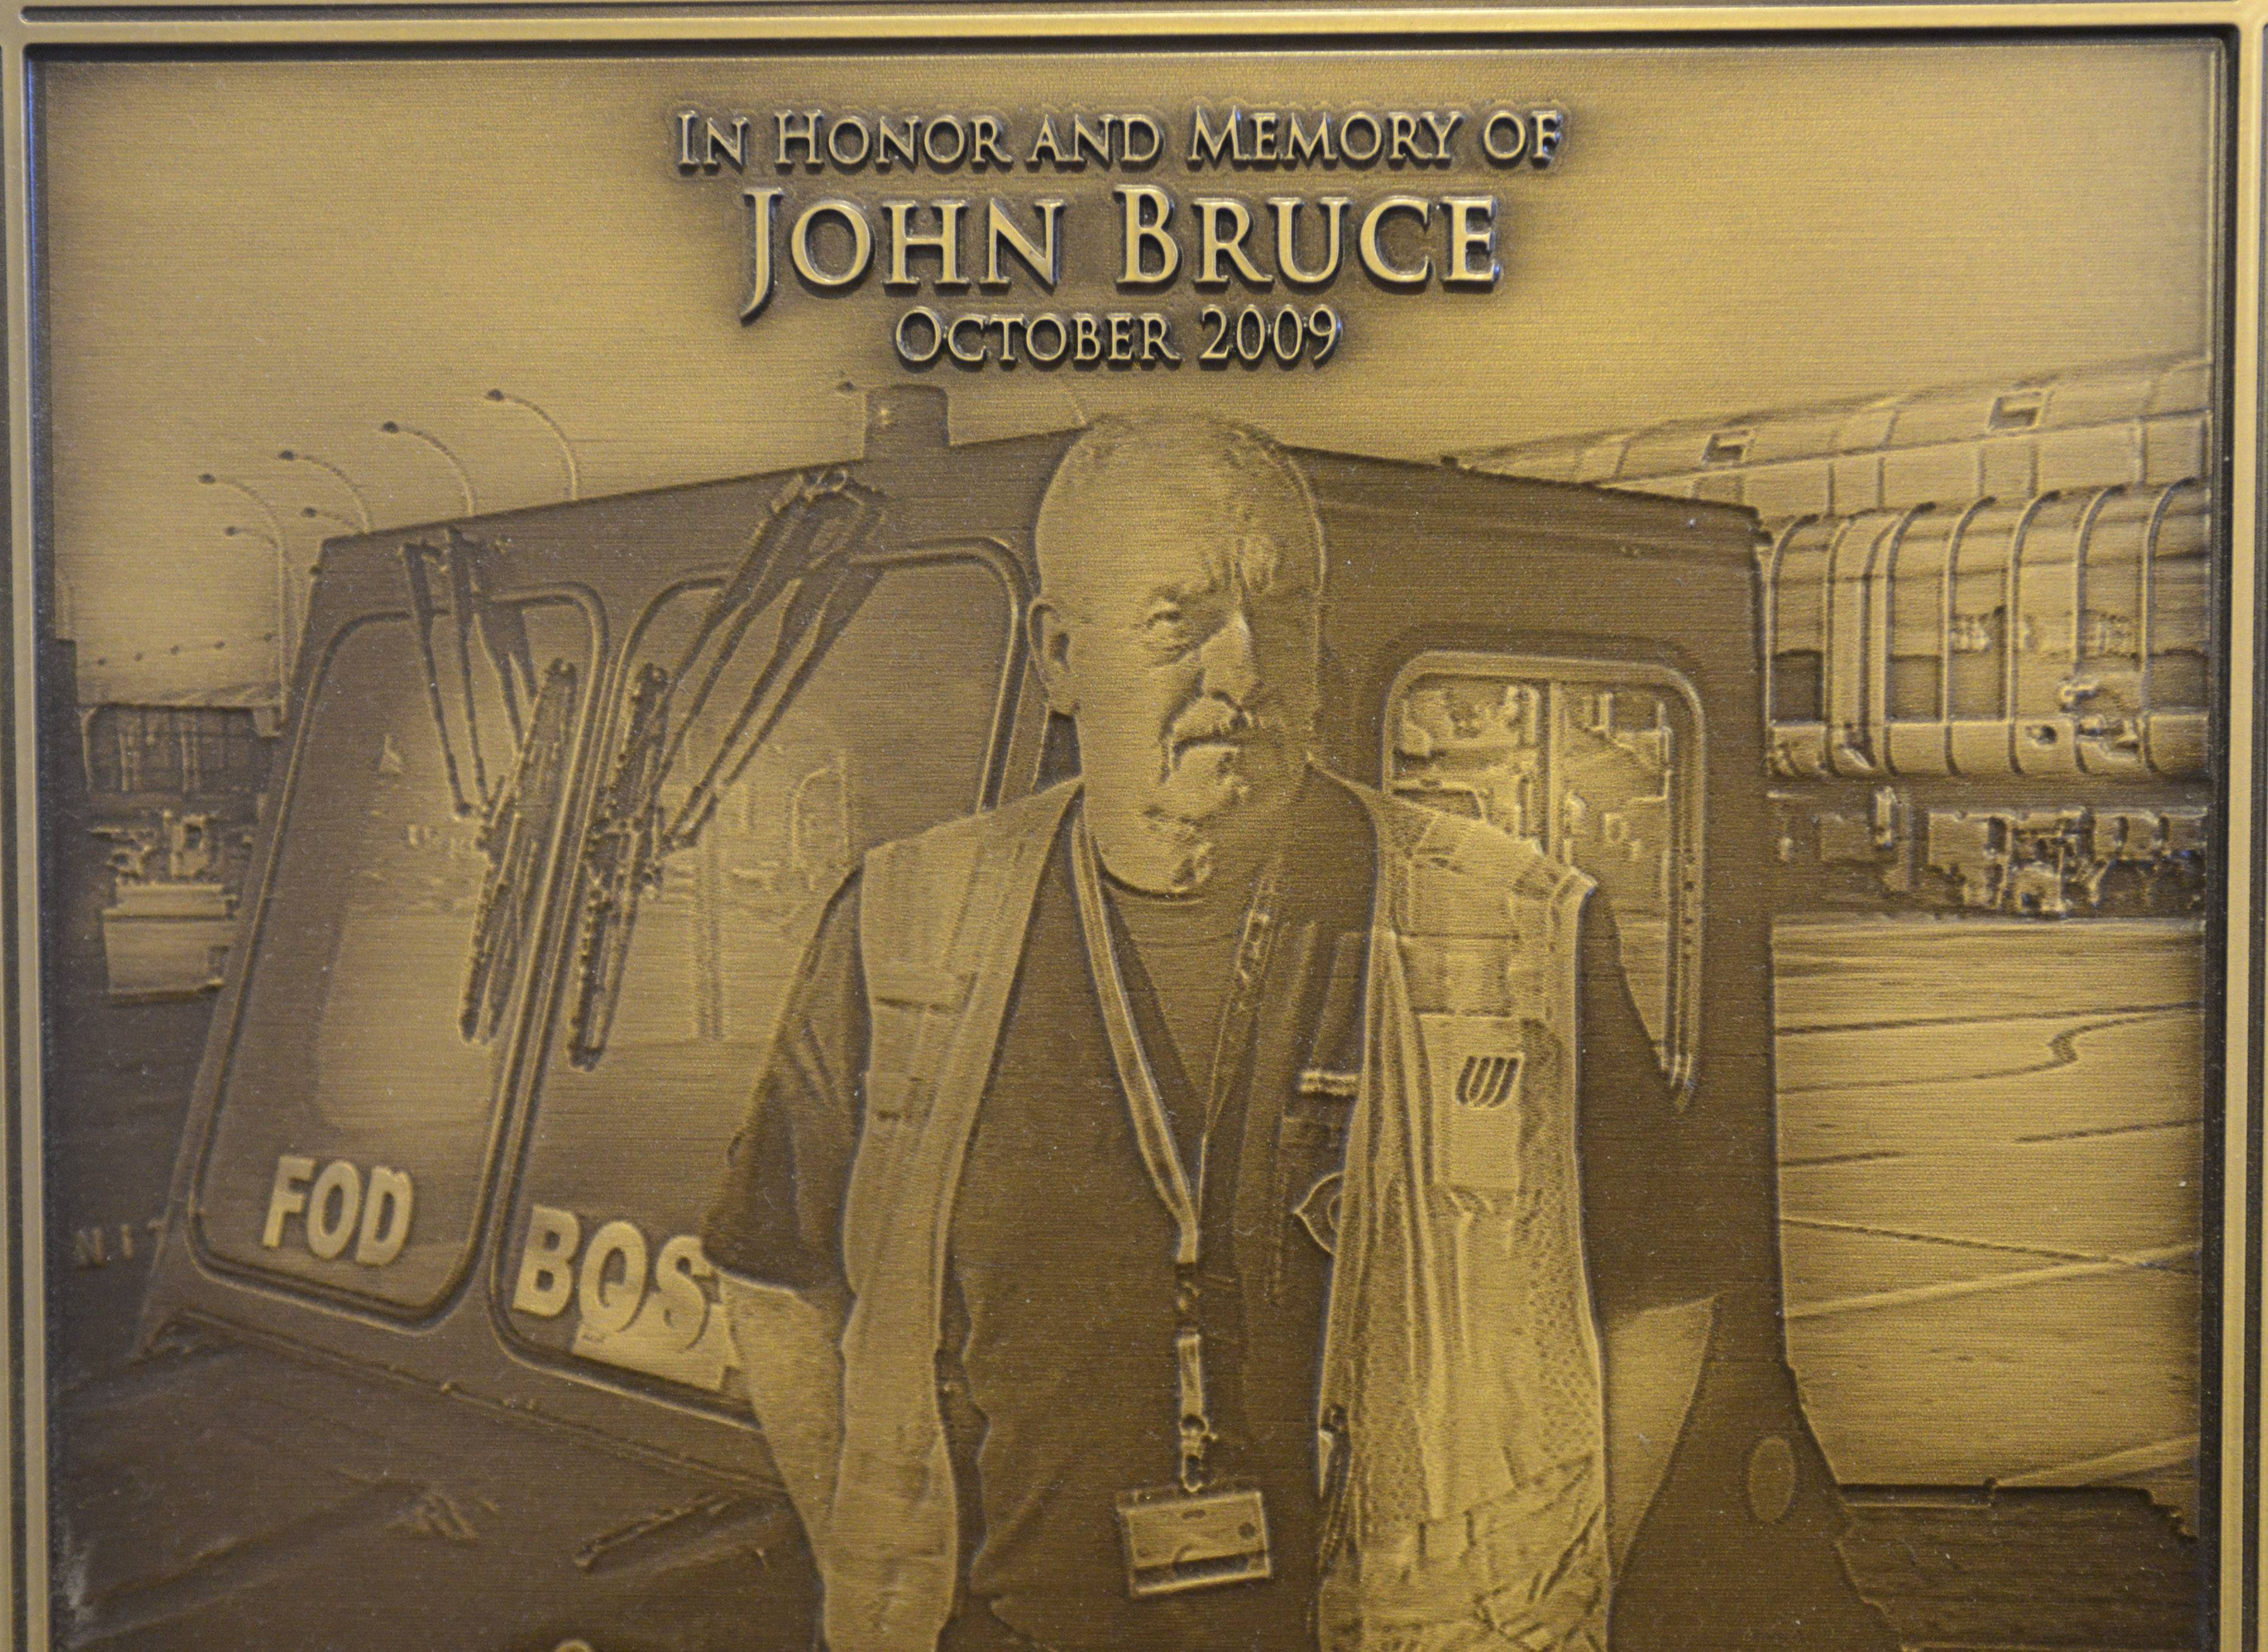 The family of the late John Bruce of Arlington Heights won a $6.65 million judgment in its wrongful death suit against CAV International. The 64-year old United Airlines employee, shown in this memorial plaque which was presented to the family by United Airlines, died in Kuwait in October, 2009, while unloading cargo for the US military.